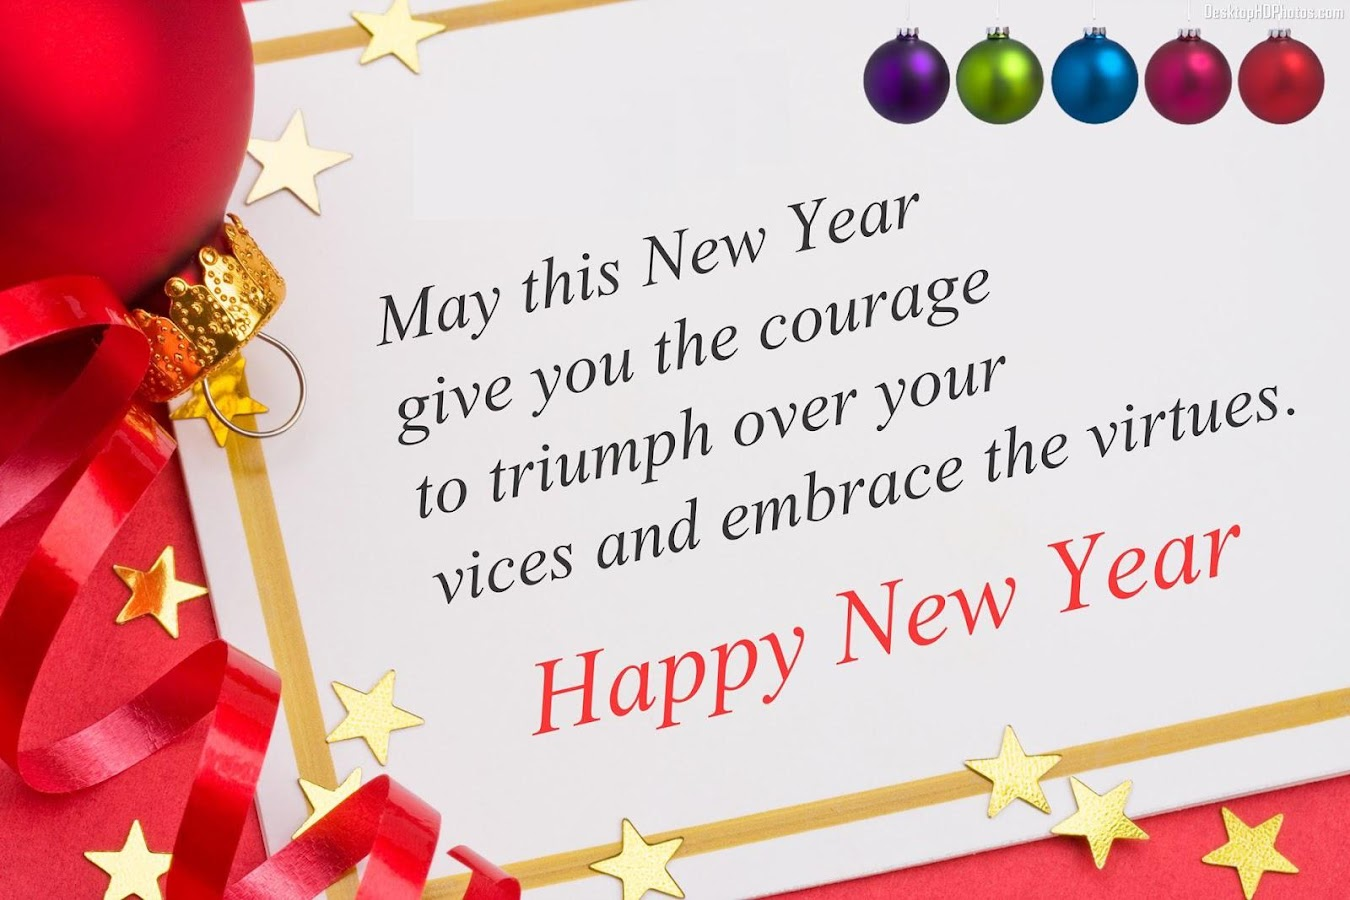 2018 Happy New Year Greetings 337 Apk Download Android